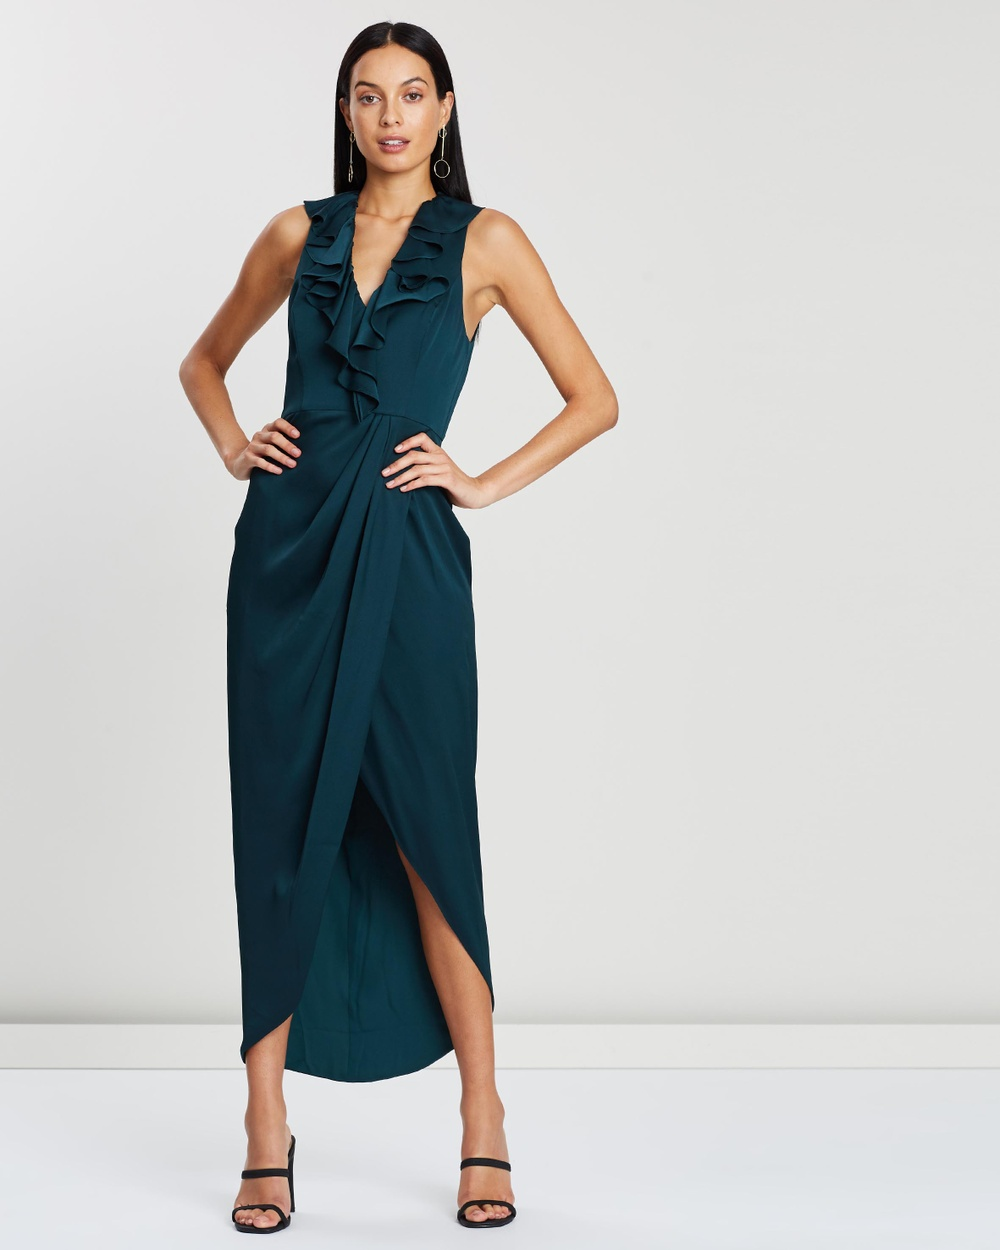 Shona Joy Plunge Frill Dress Bridesmaid Dresses Emerald Plunge Frill Dress